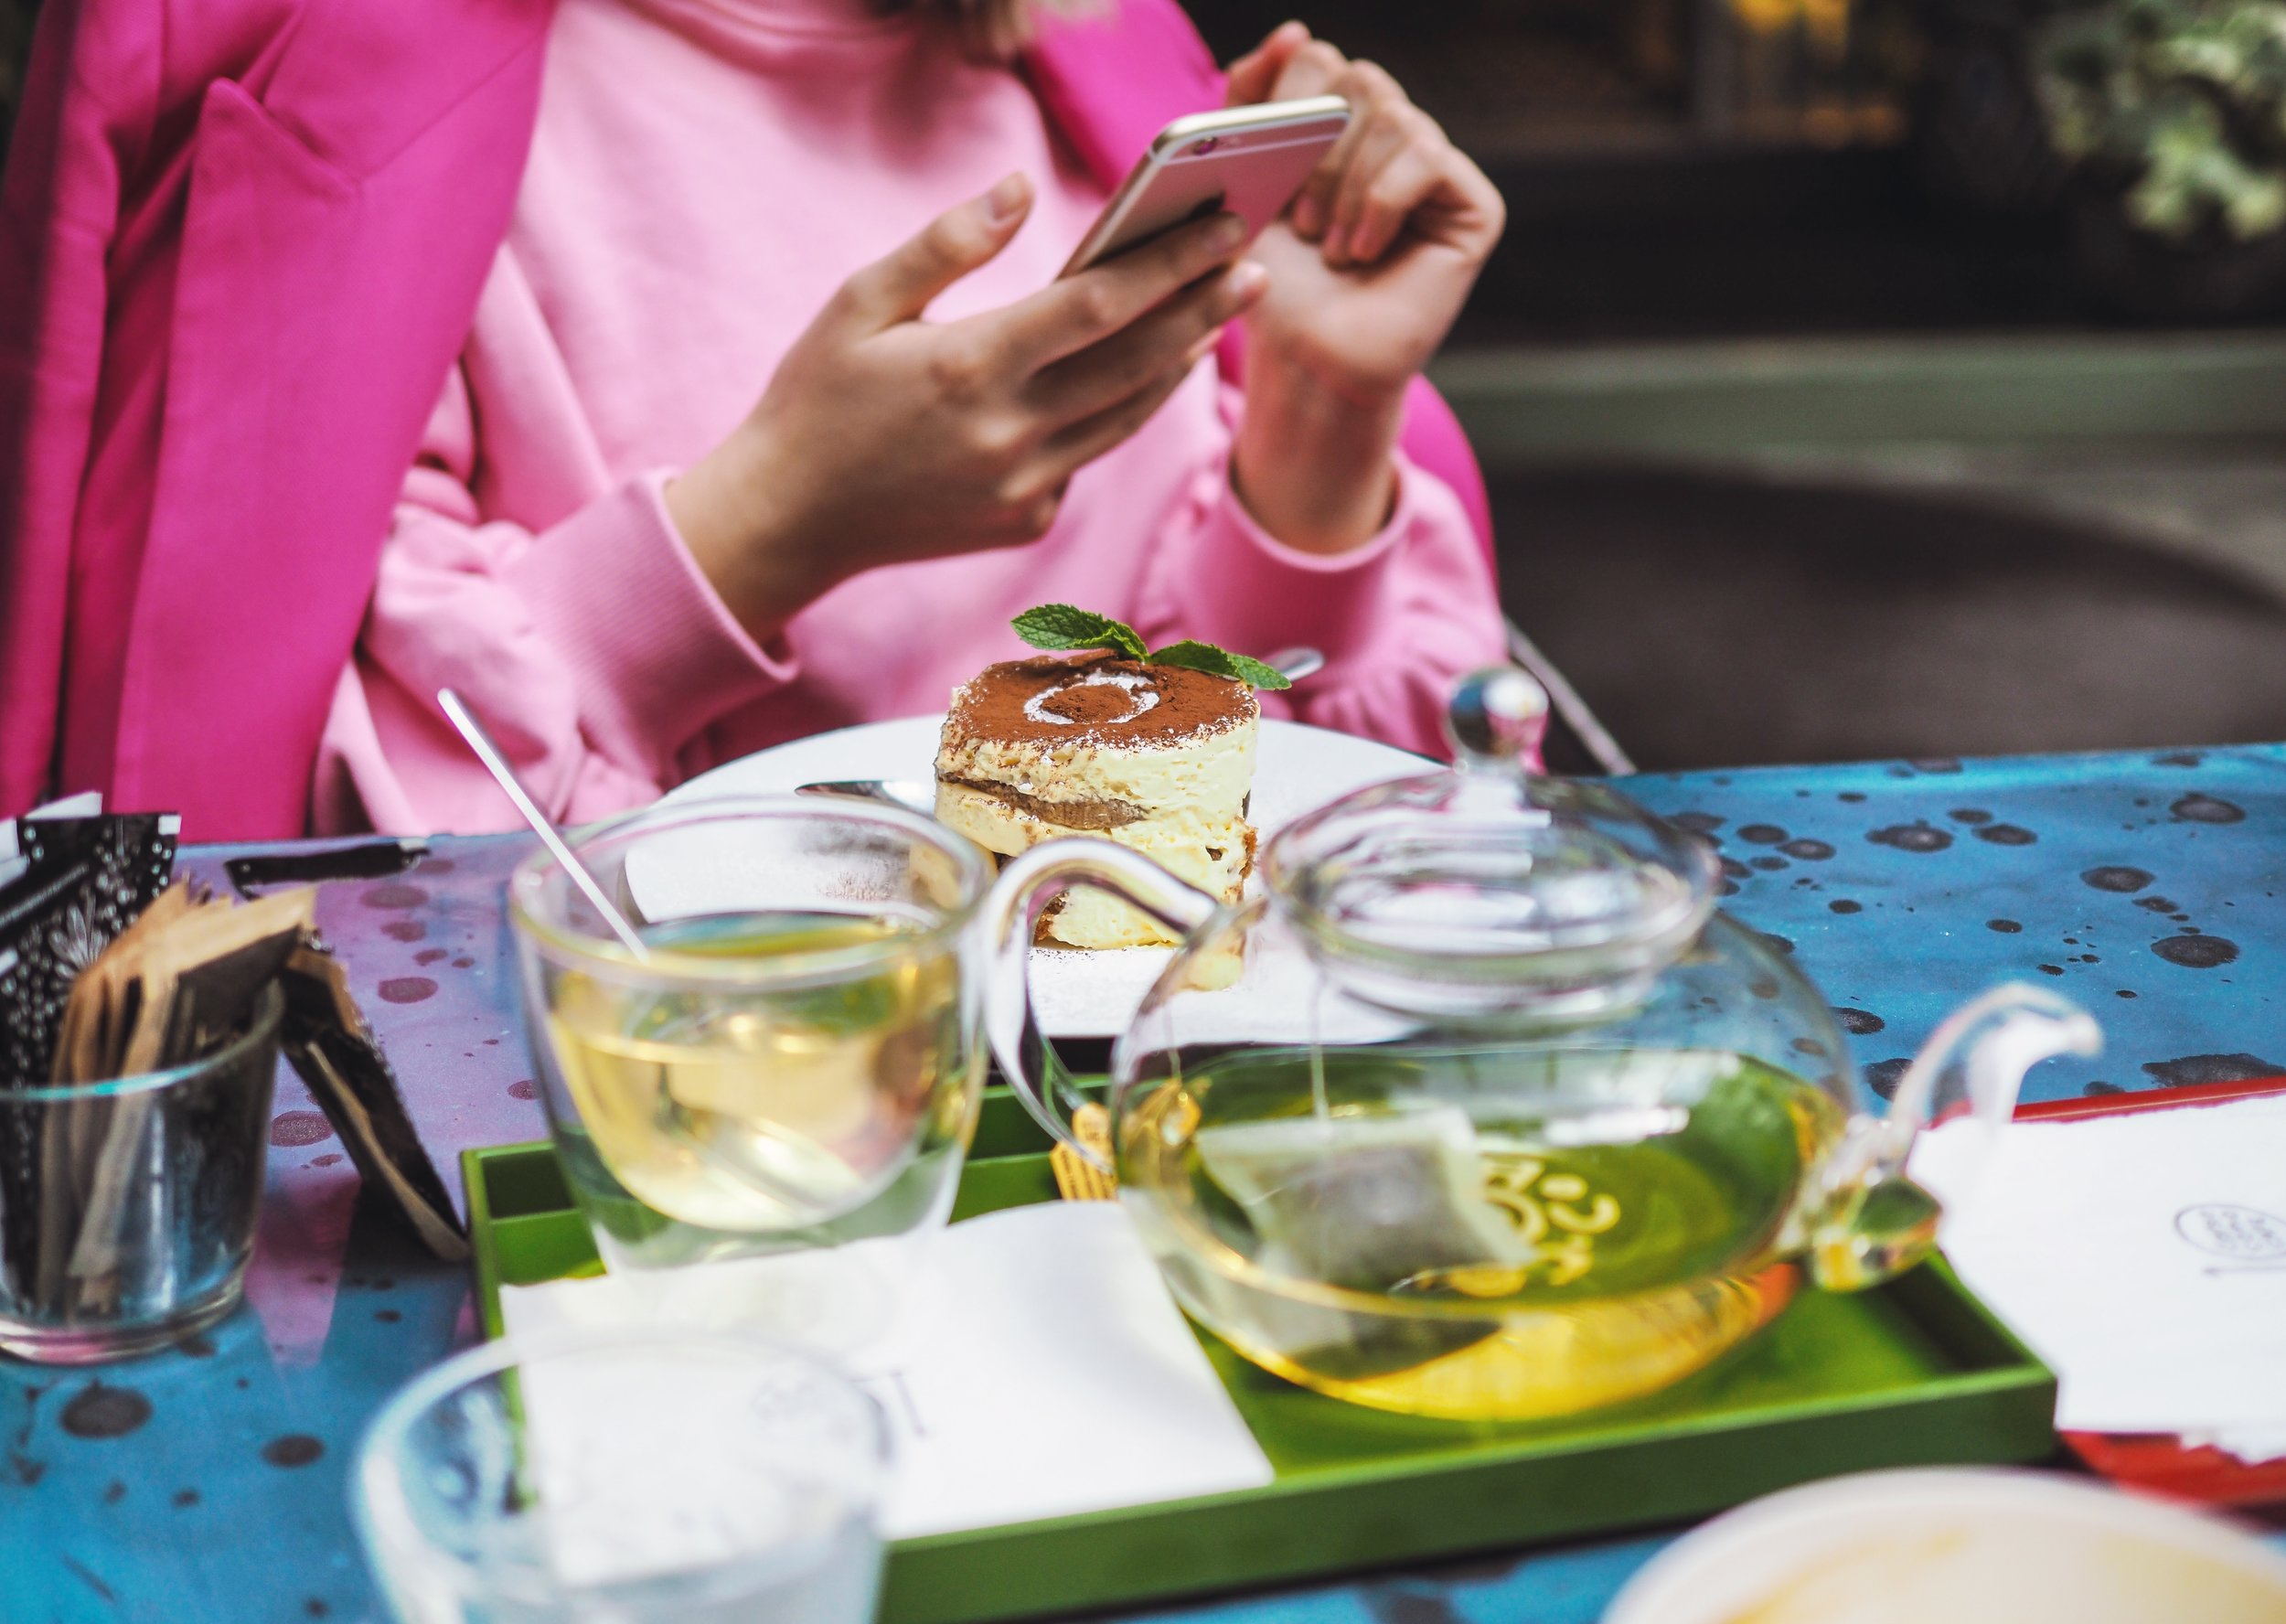 In general, most people check their social media during their lunch hour on weekdays, which makes that a prime time to post. Photo credit: Jwlez